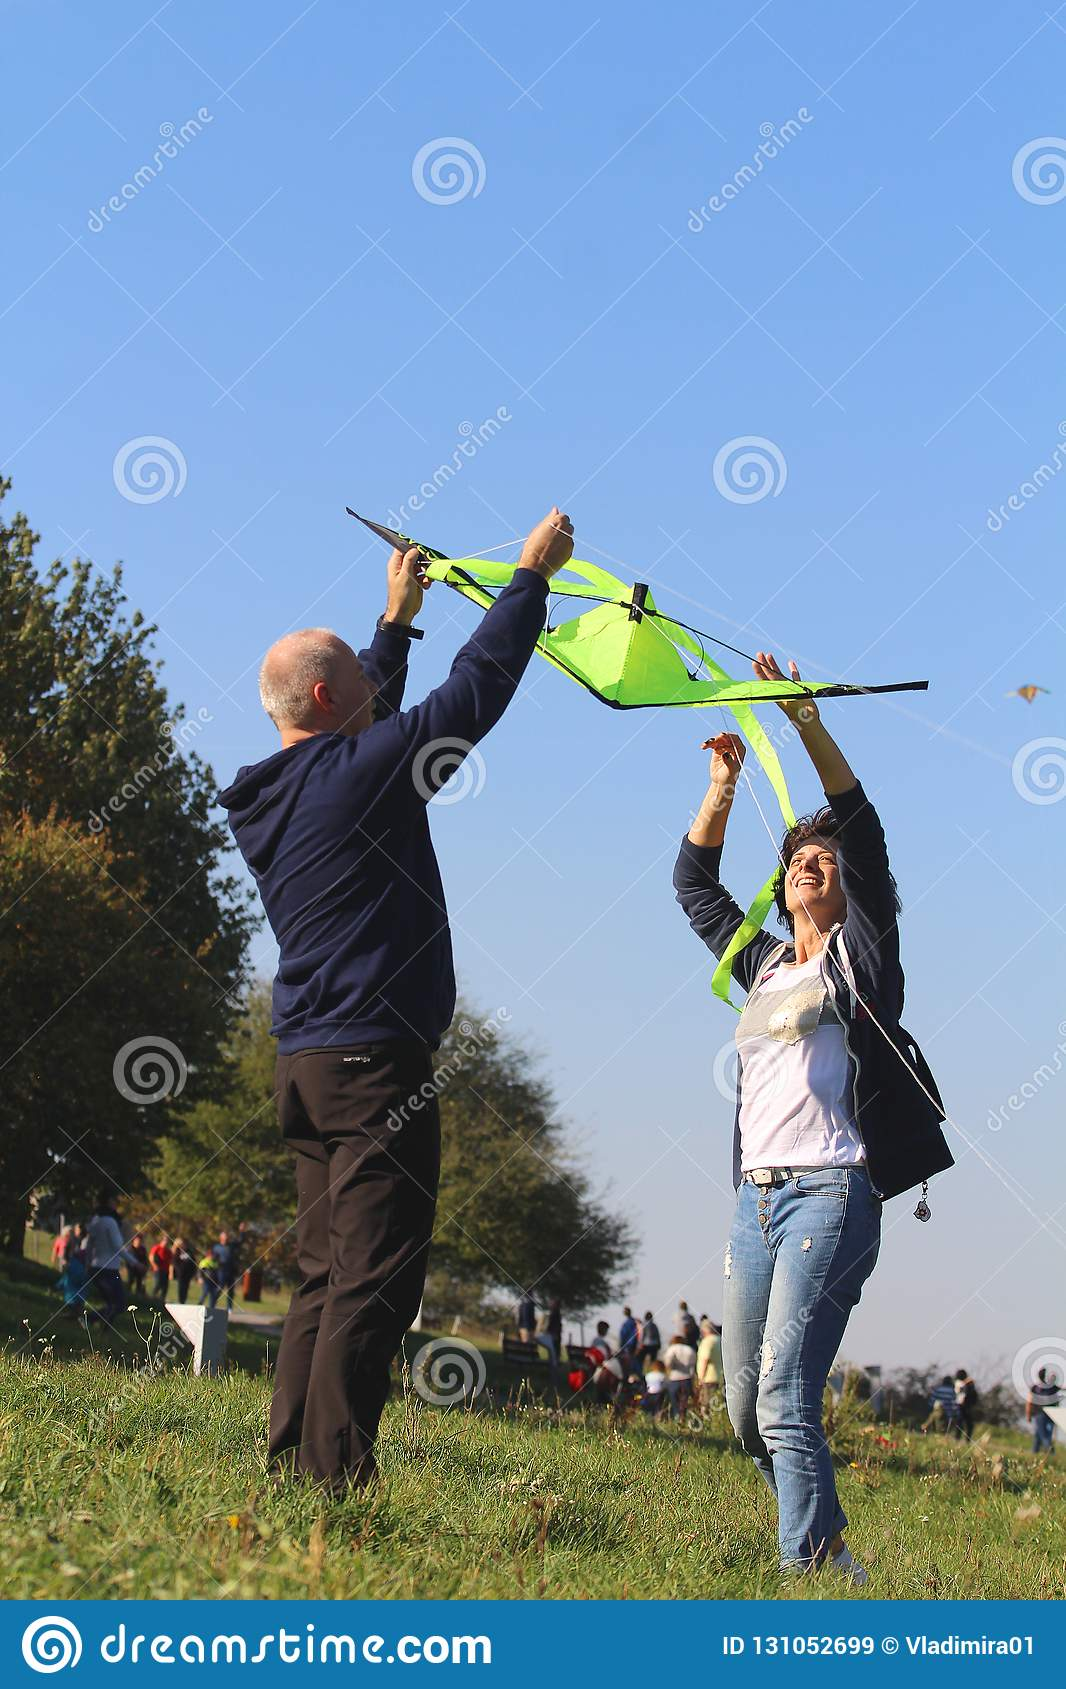 Kite festival - a couple preparing a kite